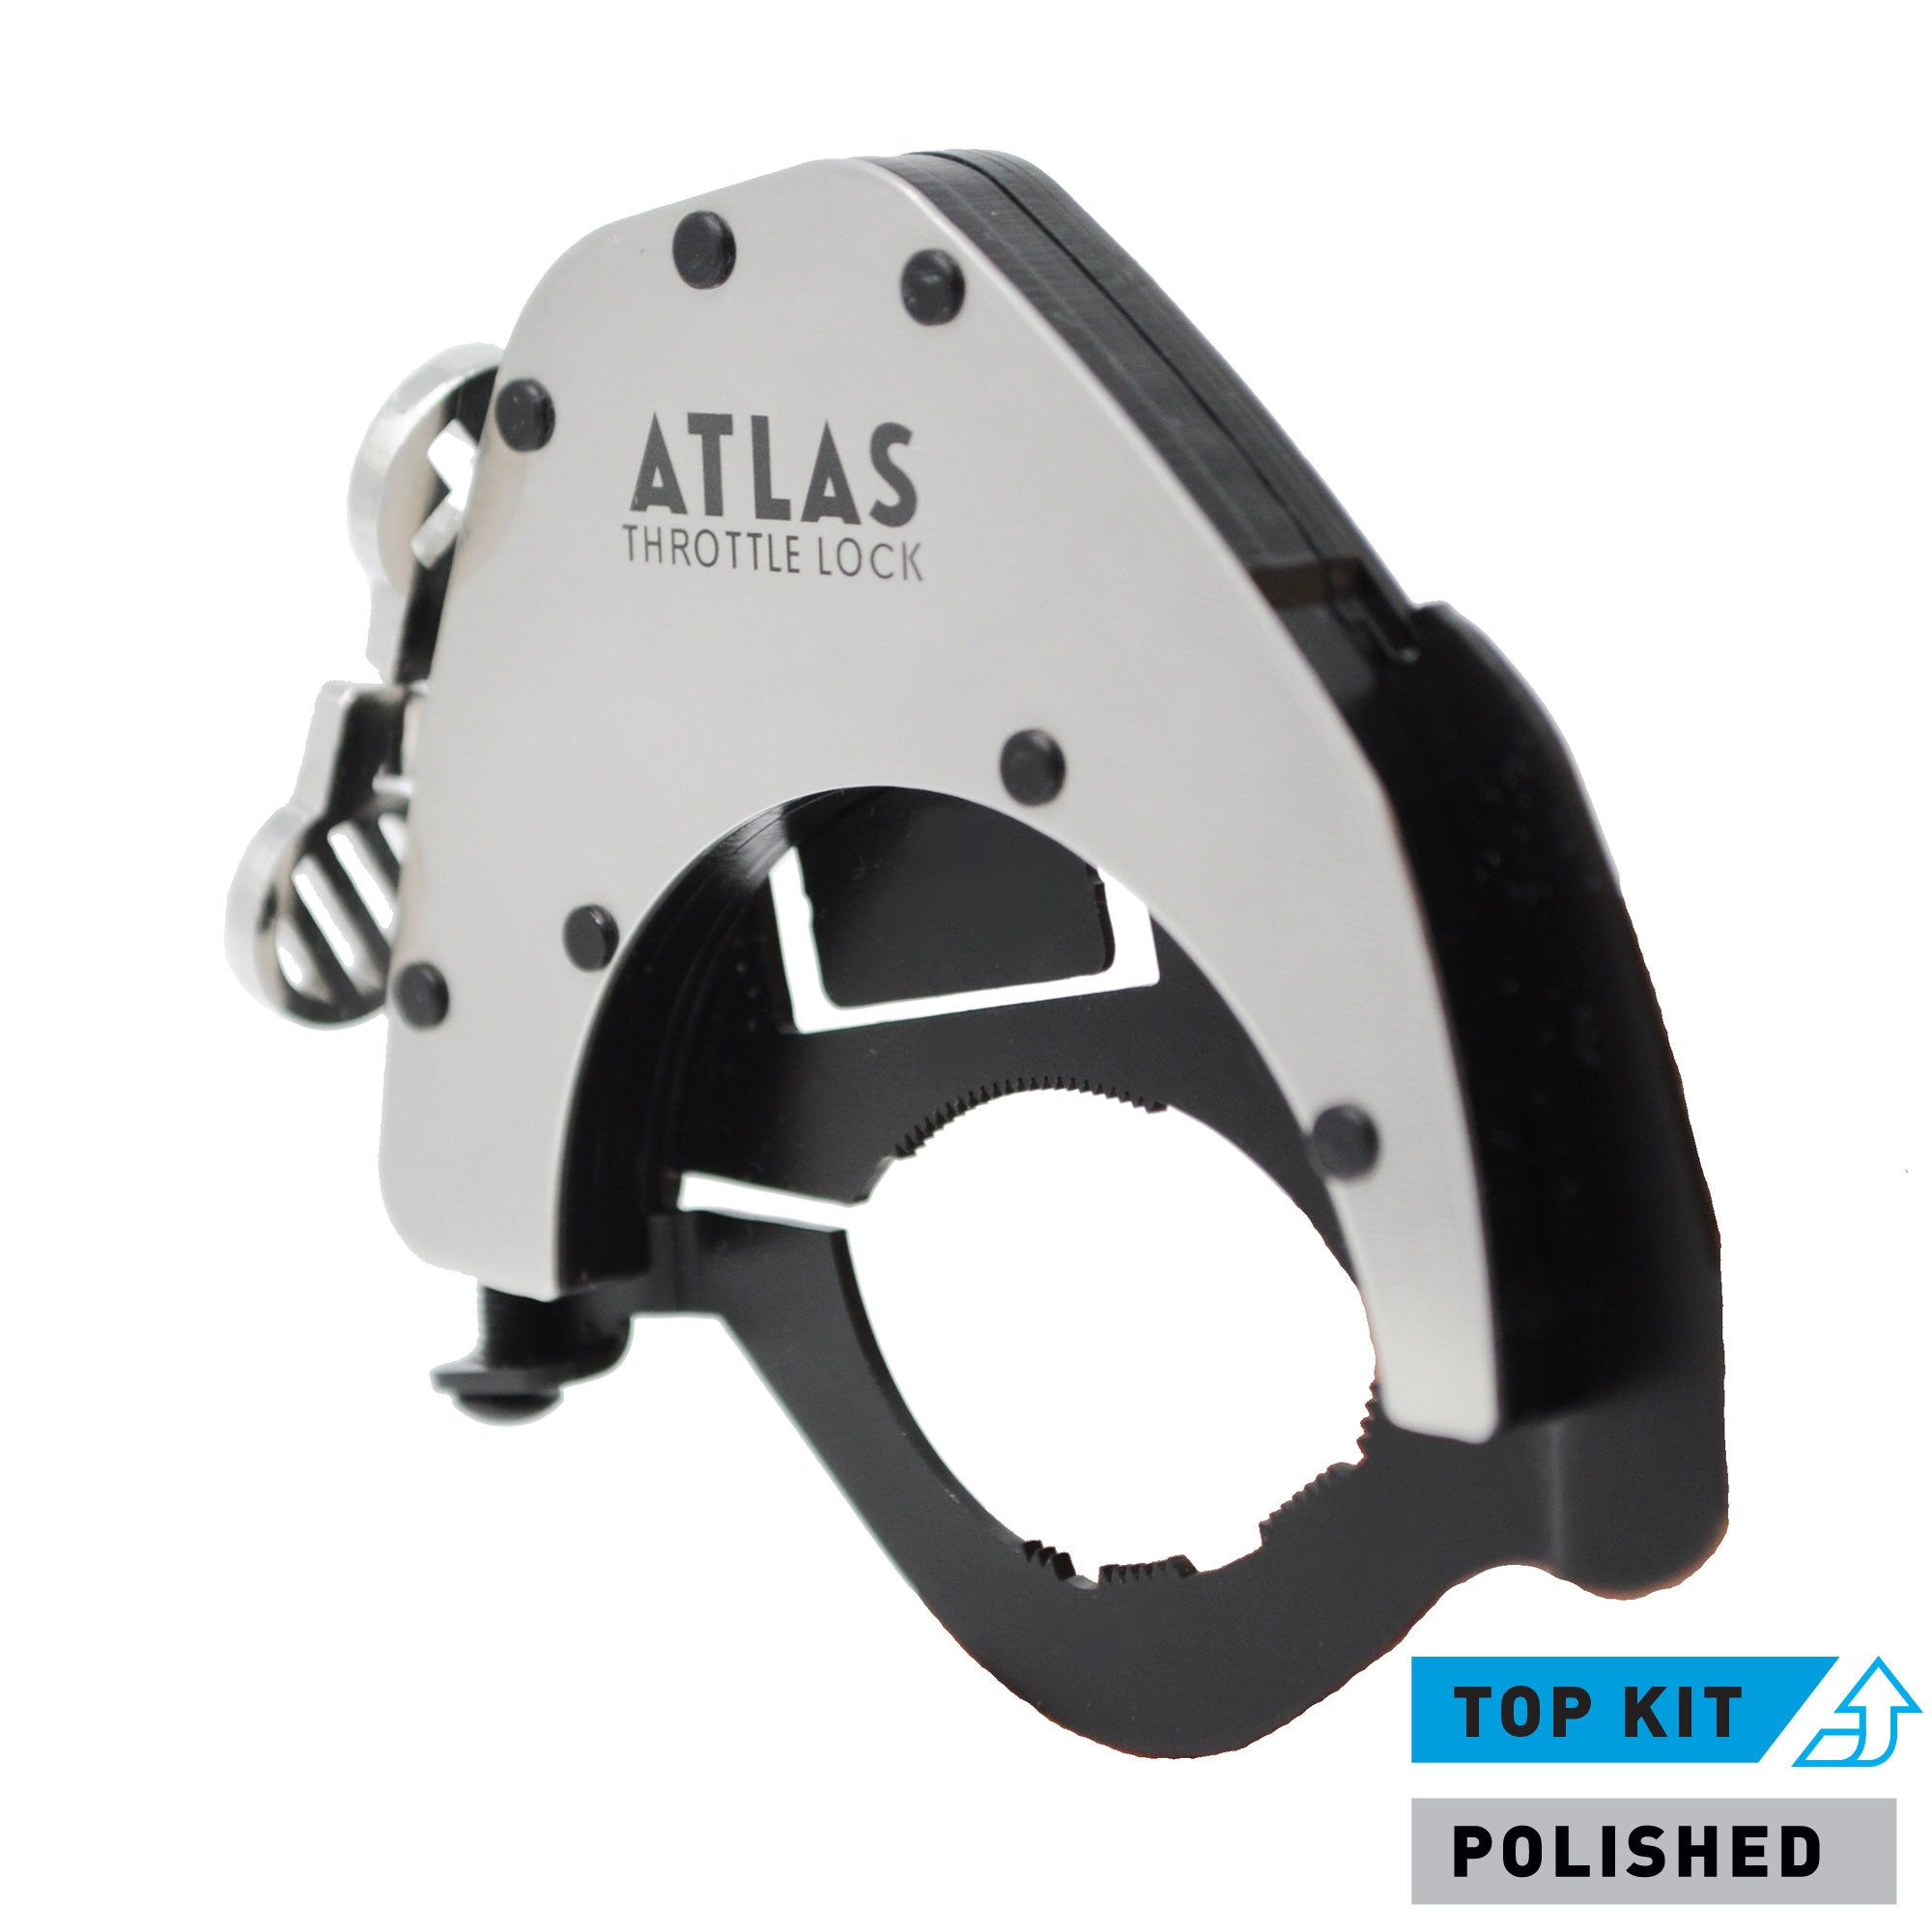 Piaggio Motorcycles - ATLAS Throttle Lock